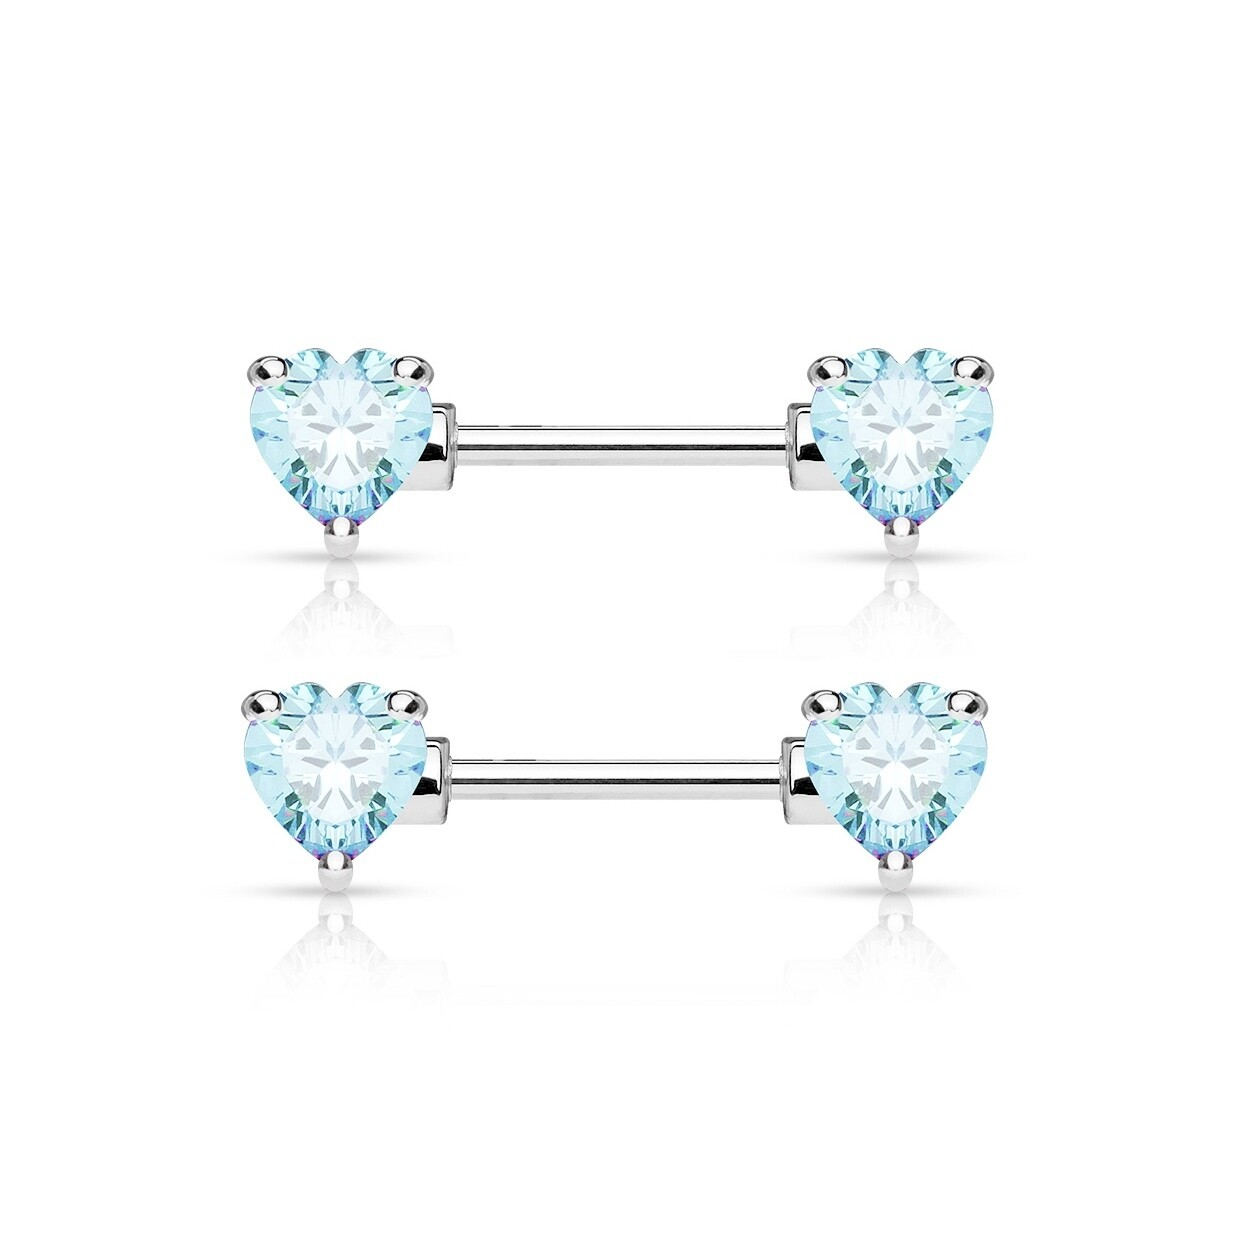 "14G 9/16"" CRYSTAL HEART NIPPLE BARS"